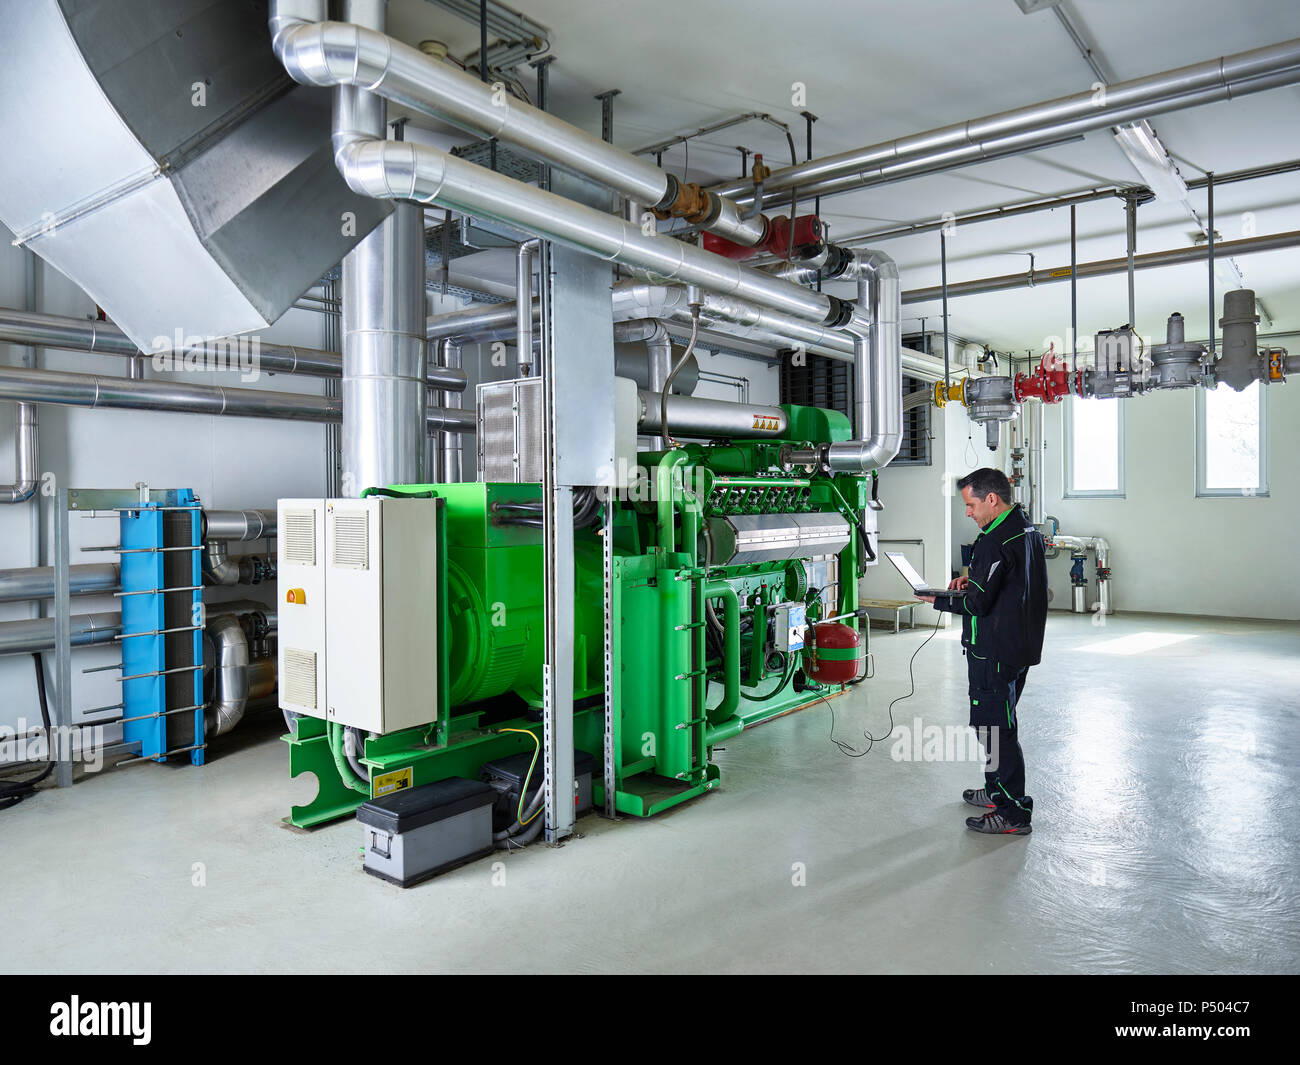 Combined heat and power plant, worker using laptop in front of gas engine - Stock Image